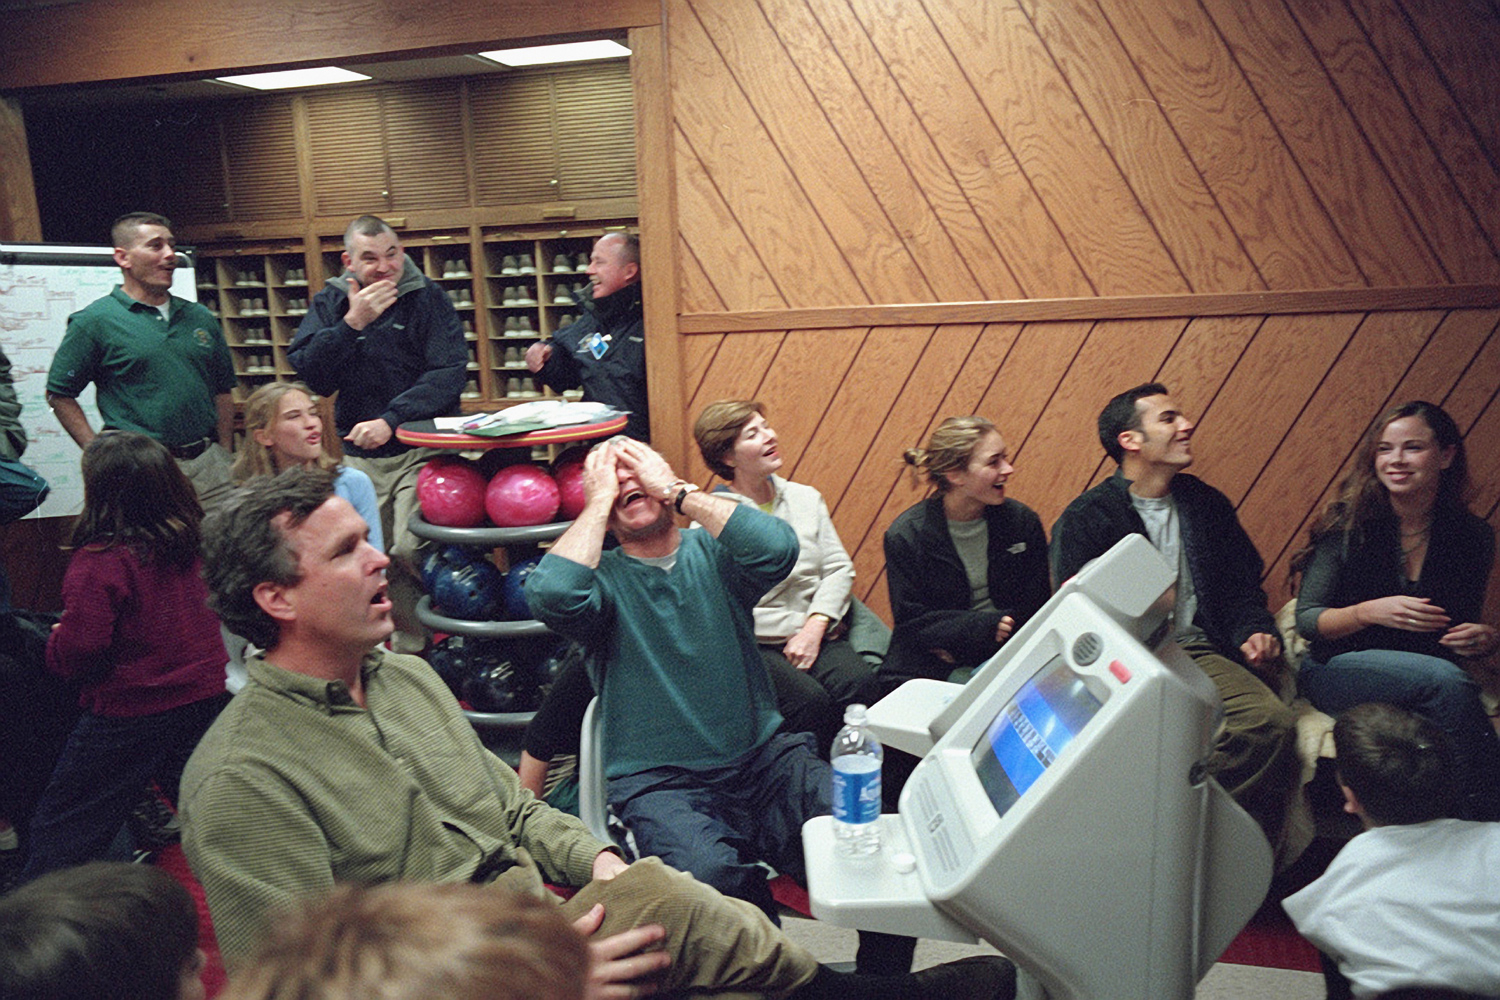 Dec. 25, 2001. President Bush reacts as he joins family members in a Christmas Day bowling tournament at Camp David.